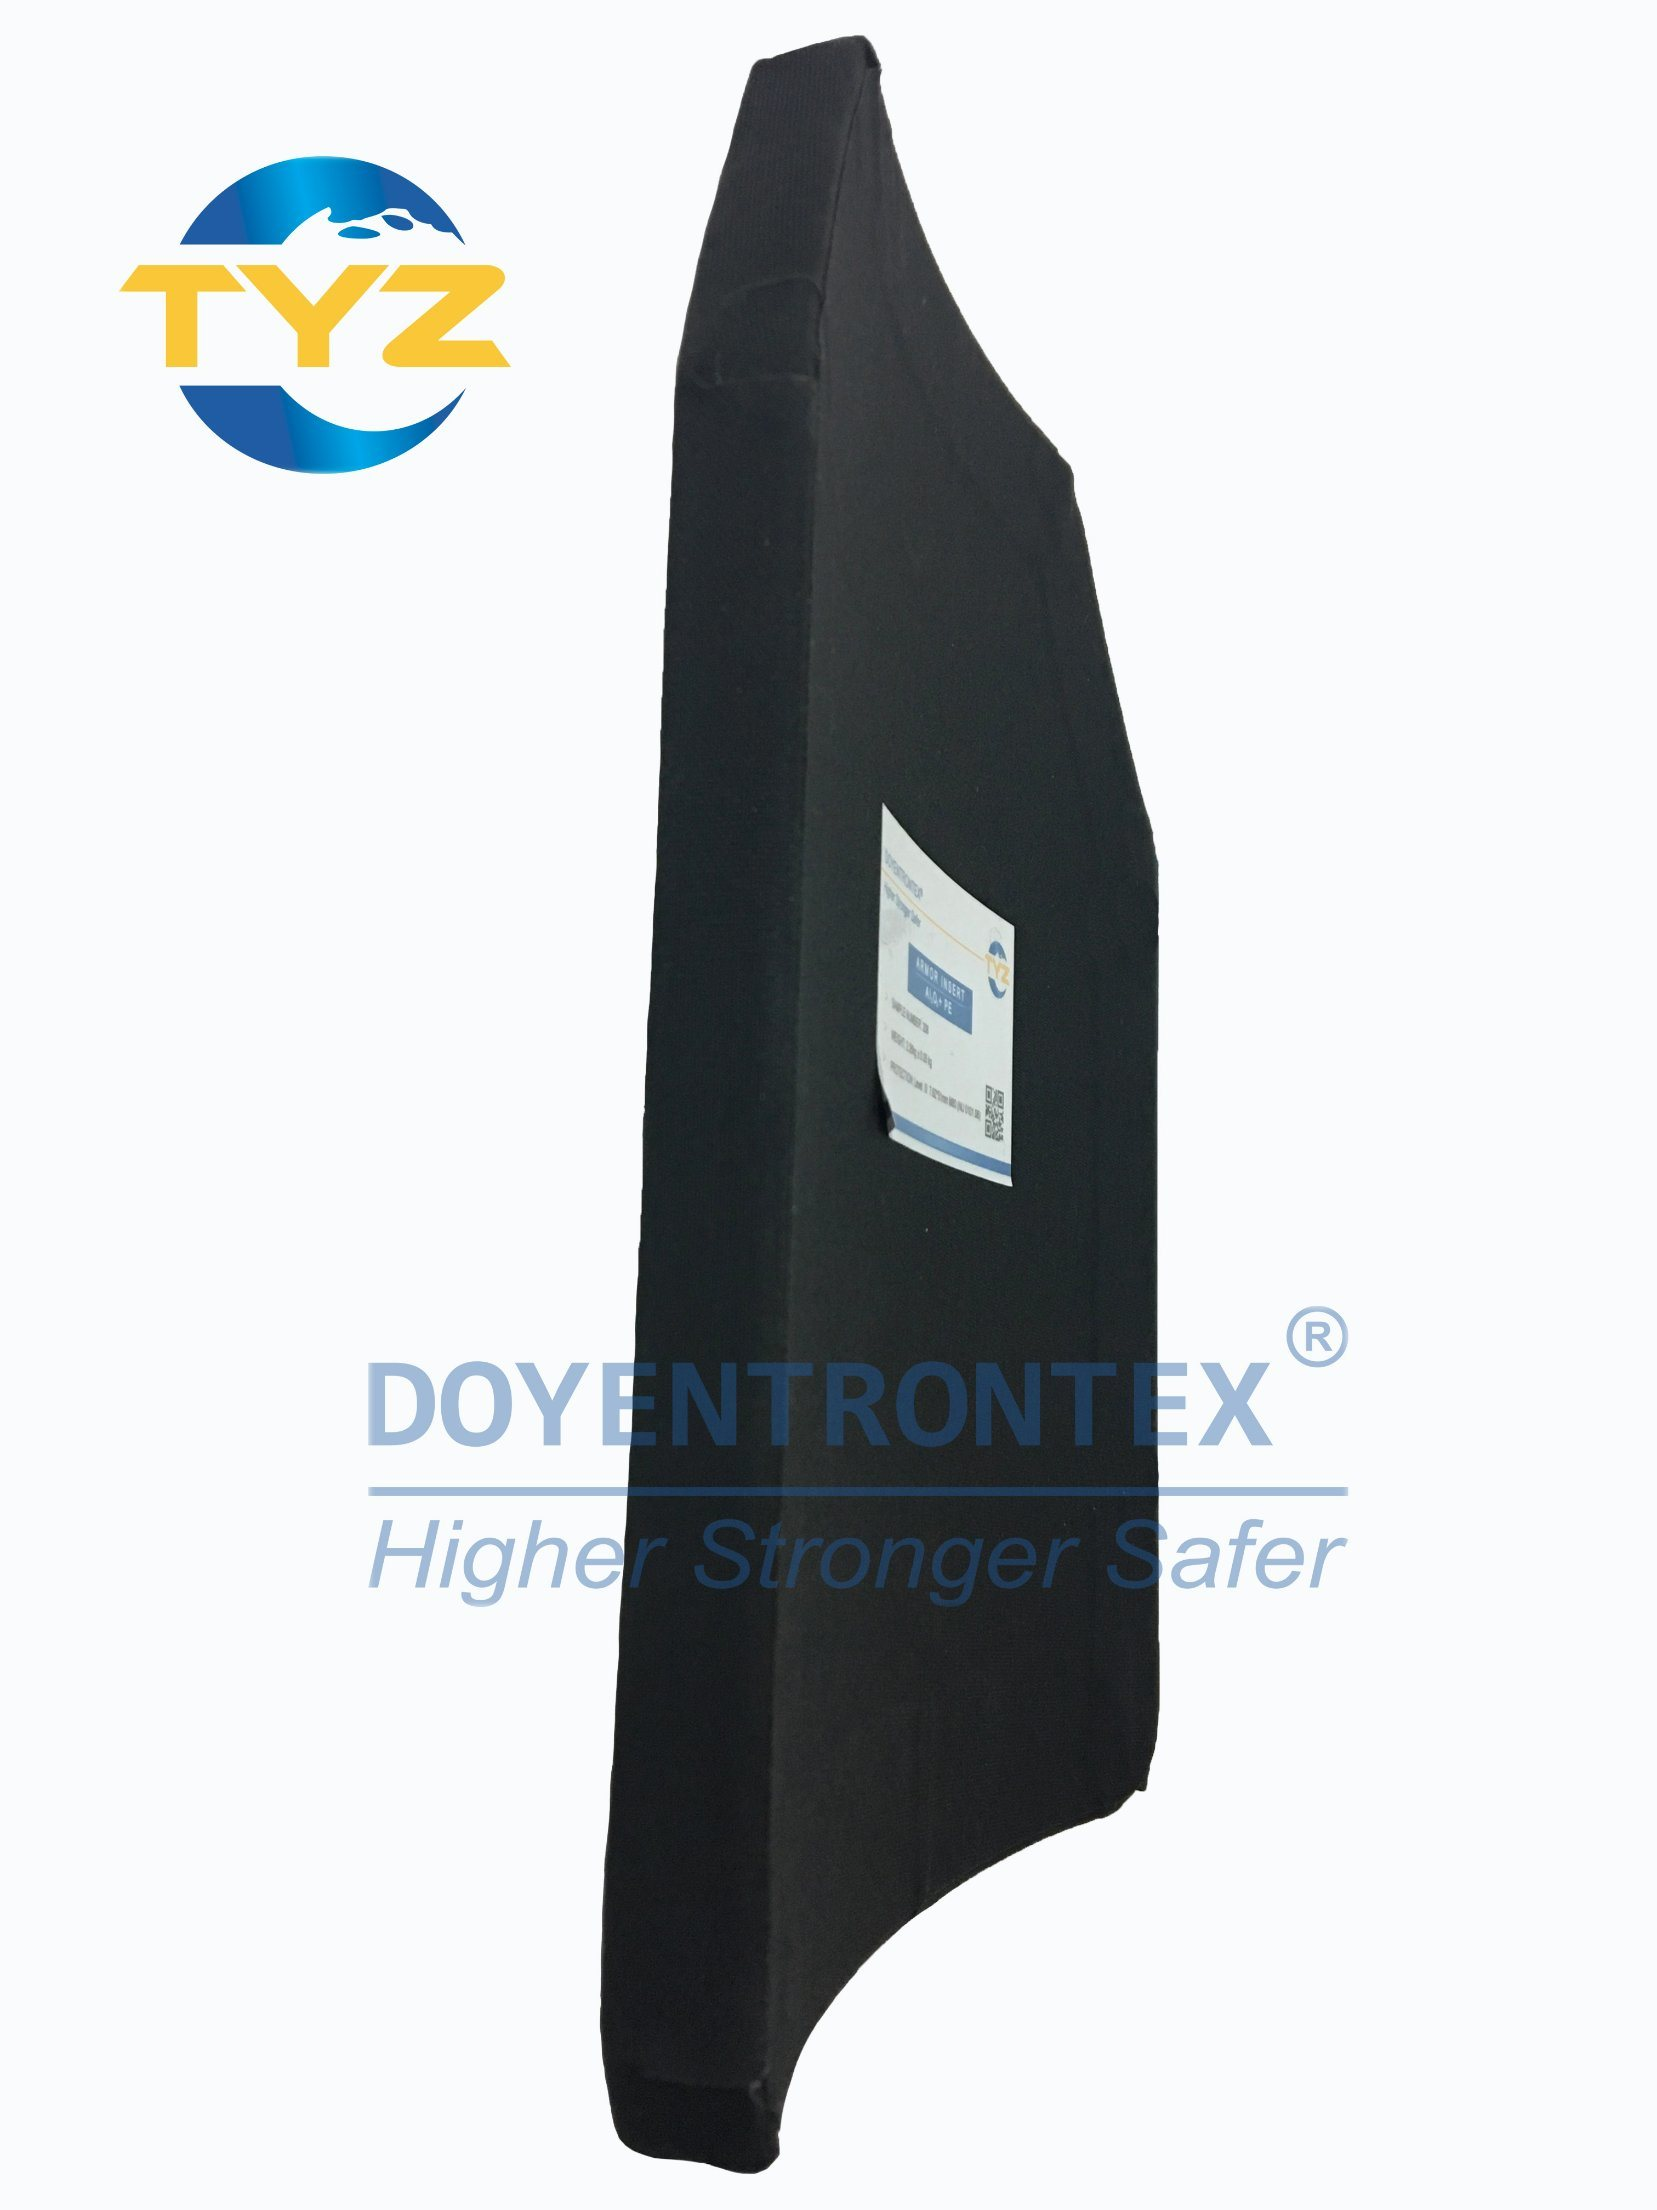 Bulletproof Plate/Armor Insert Plate/Nij Level III Plate/Ceramic Plate (TYZ  sc 1 st  Beijing Tongyizhong Specialty Fiber Technology \u0026 Development Co. Ltd. & China Bulletproof Plate/Armor Insert Plate/Nij Level III Plate ...